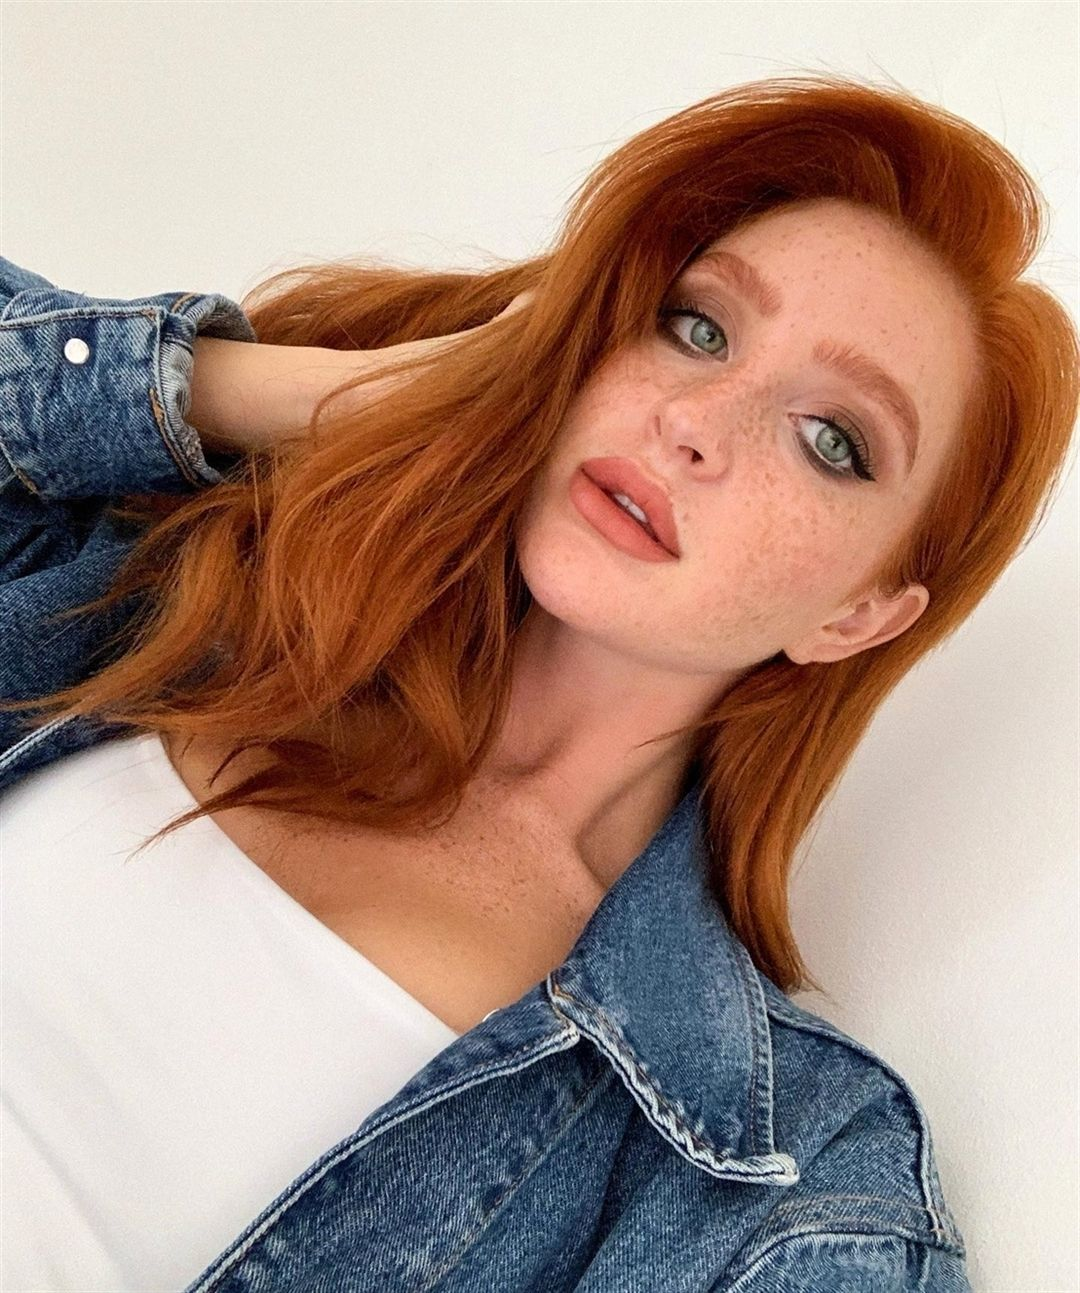 1 005 Likes 16 Comments Stunning Redheads Stunning Redheads On Instagram Credit To Alina Sch Stunning Redhead Red Hair Don T Care Beautiful Redhead